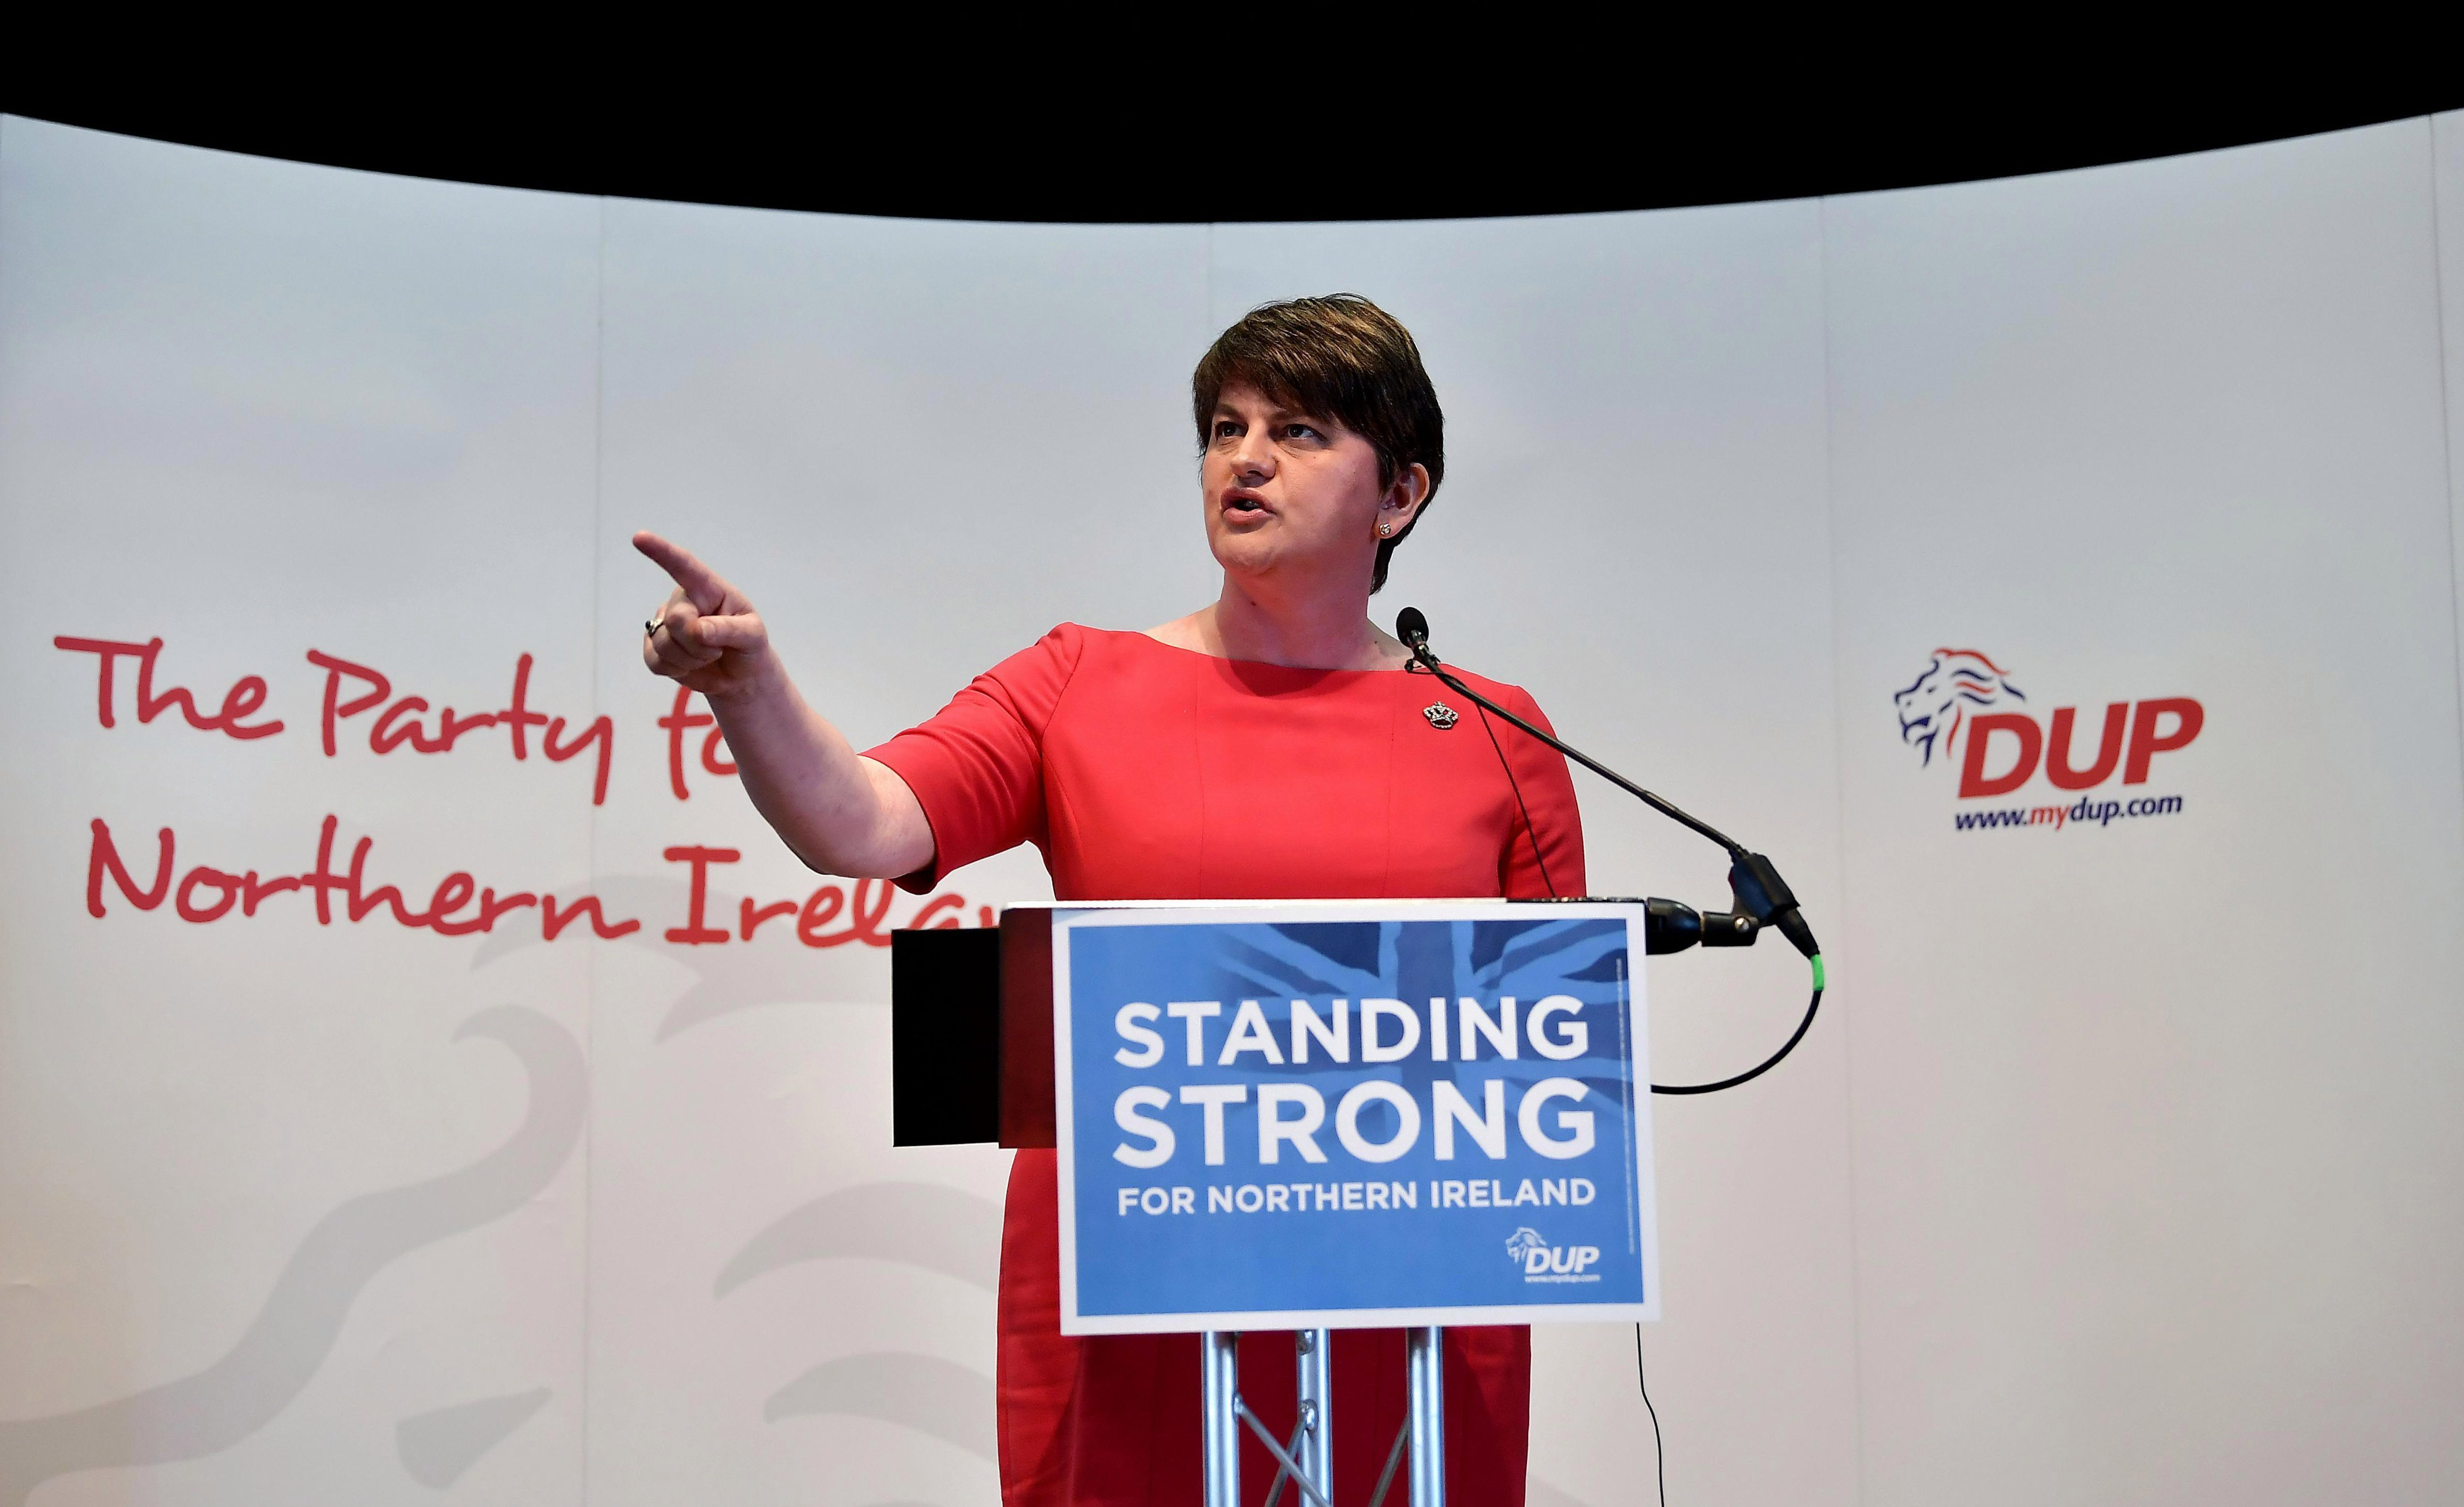 The DUP is the largest party in Northern Ireland